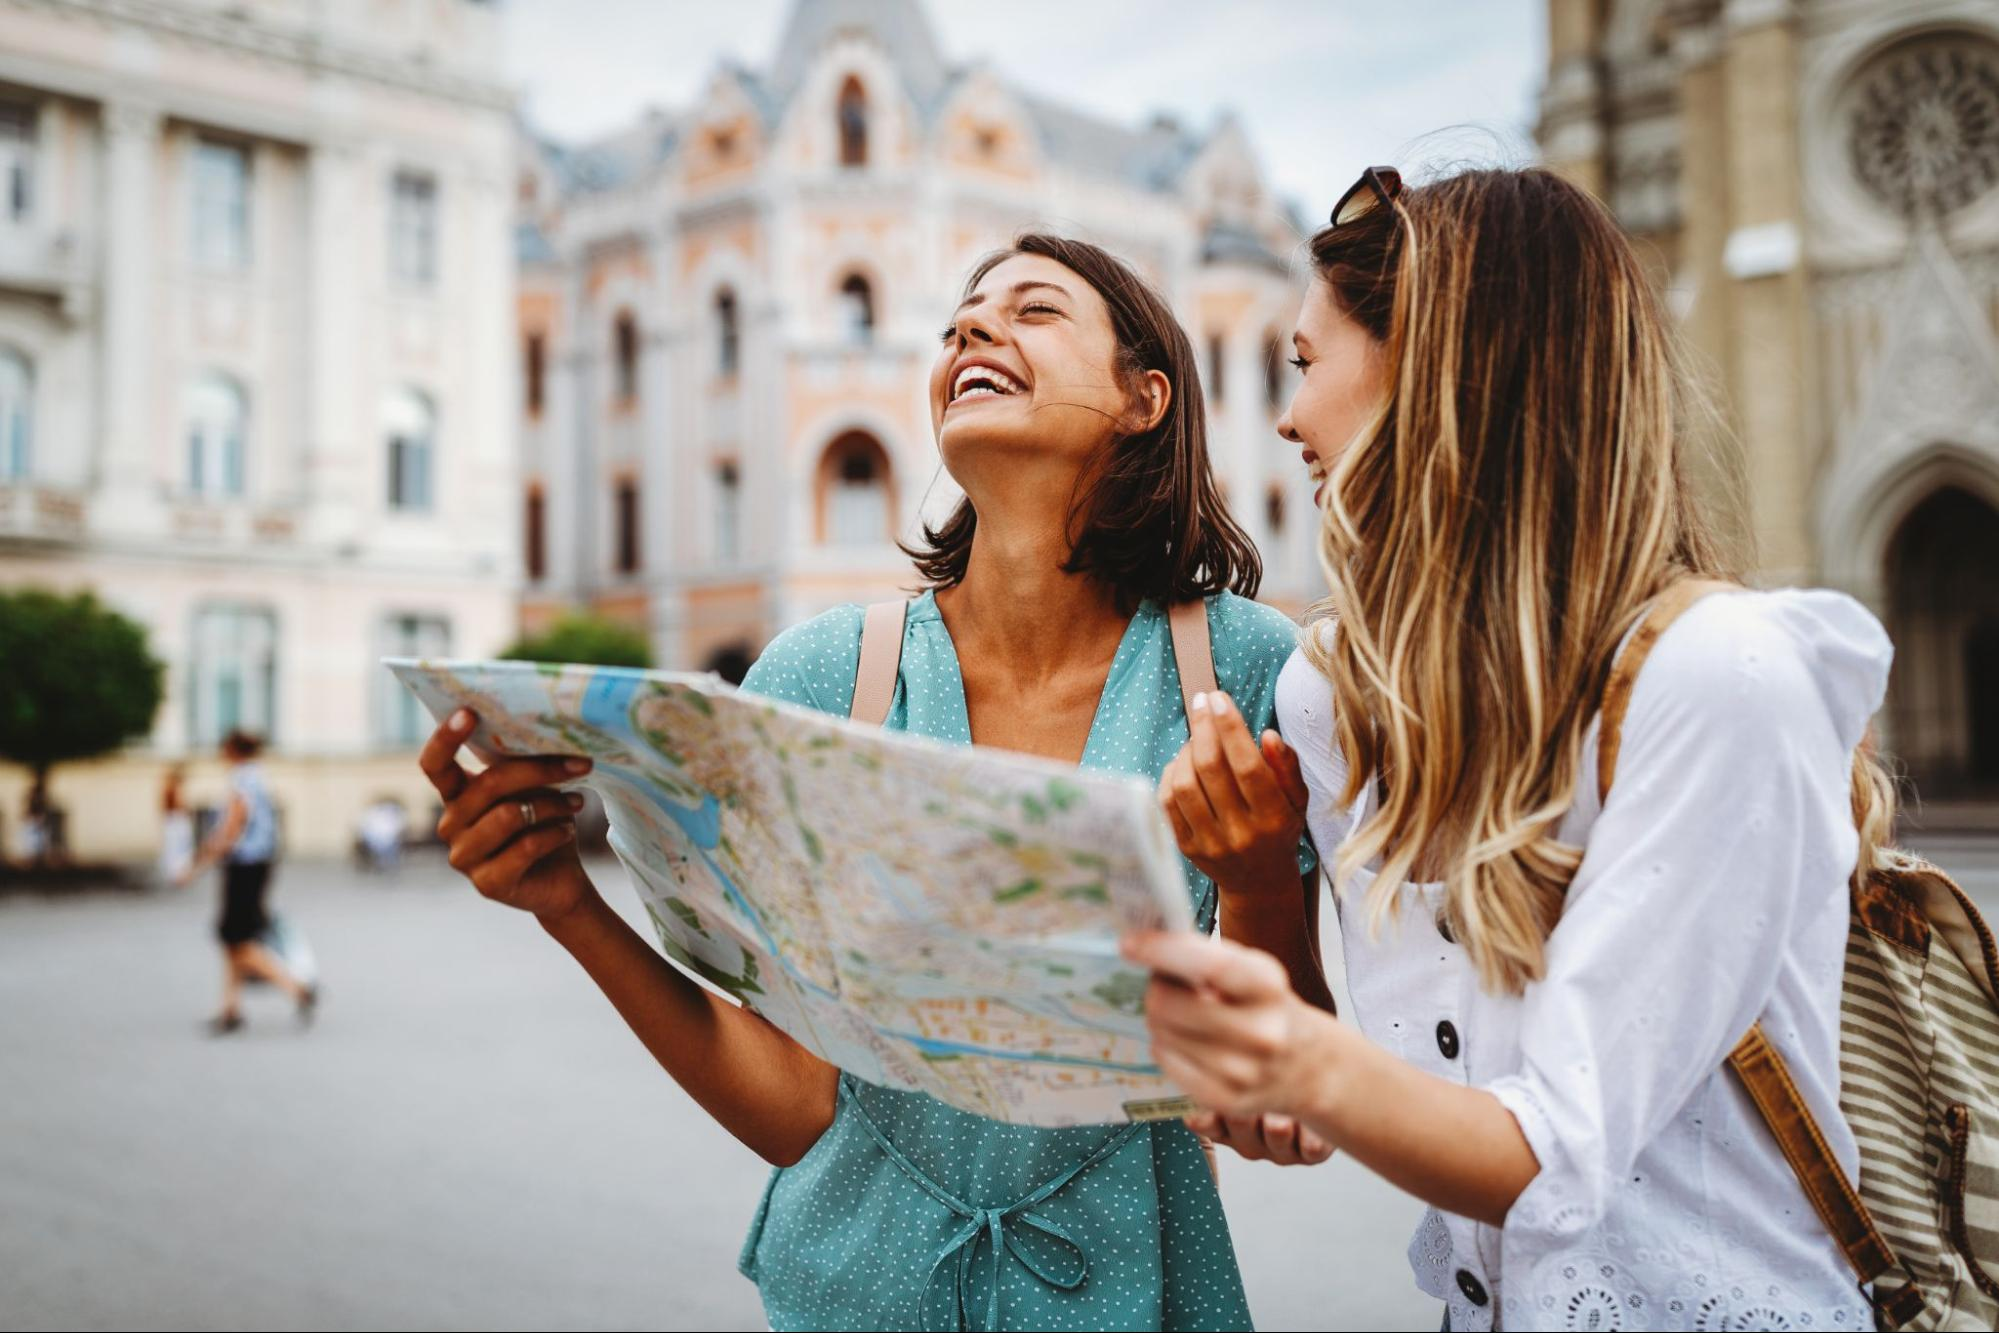 How to travel on a budget: Two women use a map while sightseeing